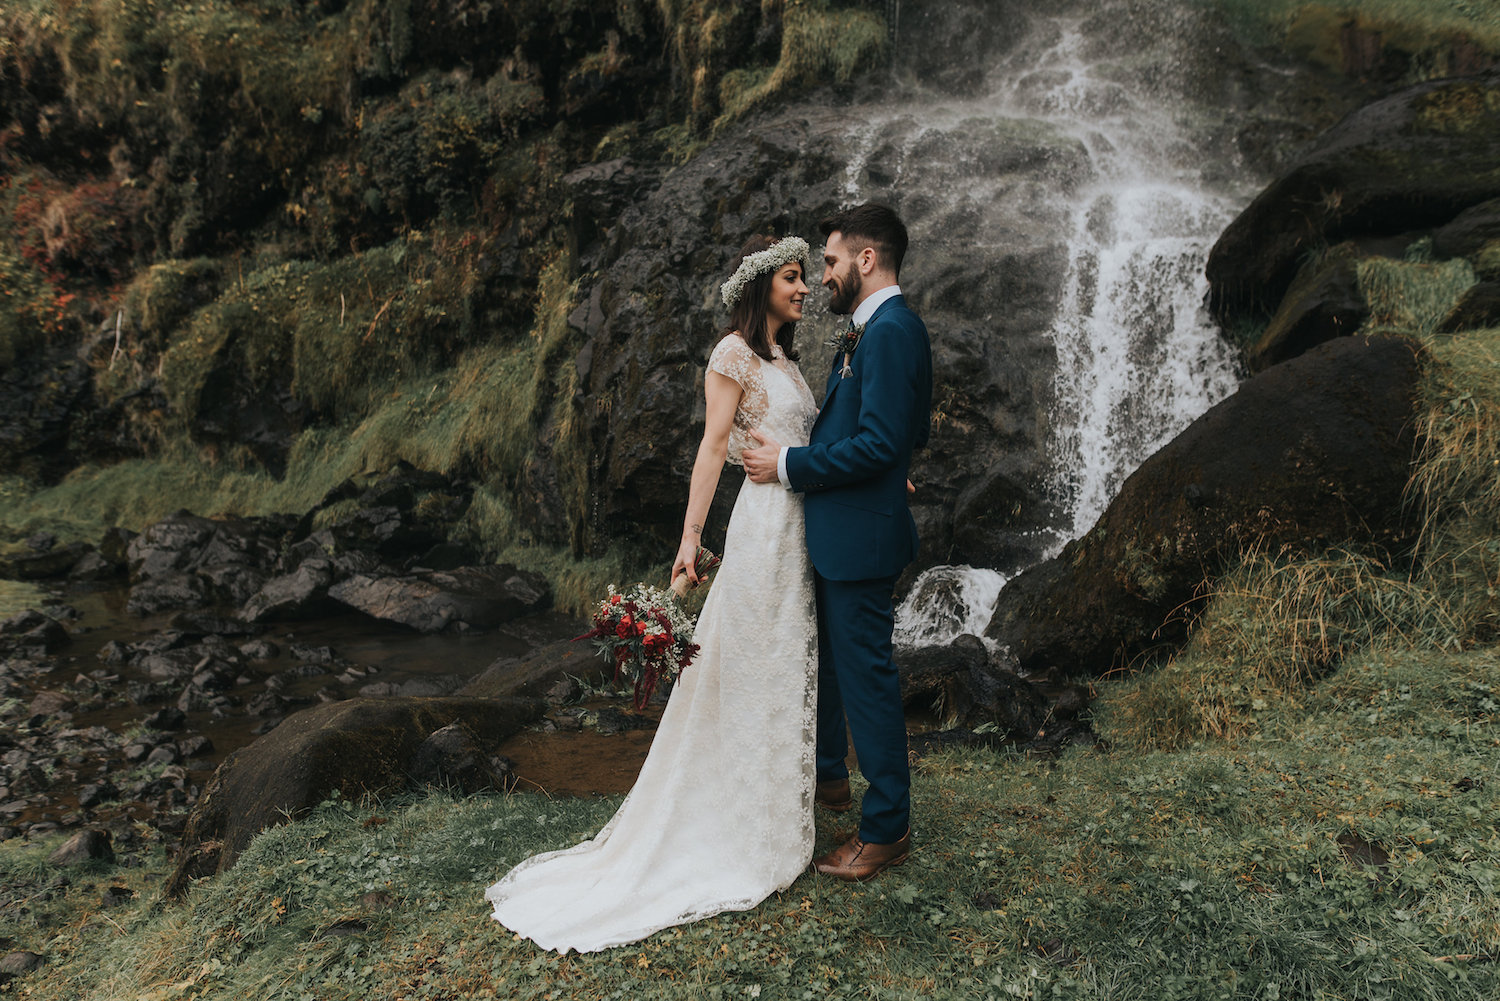 Beautiful bride Lisa wore a Lydia Rose Halfpenny London wedding dress | Image by Neil Thomas Douglas | Iceland wedding